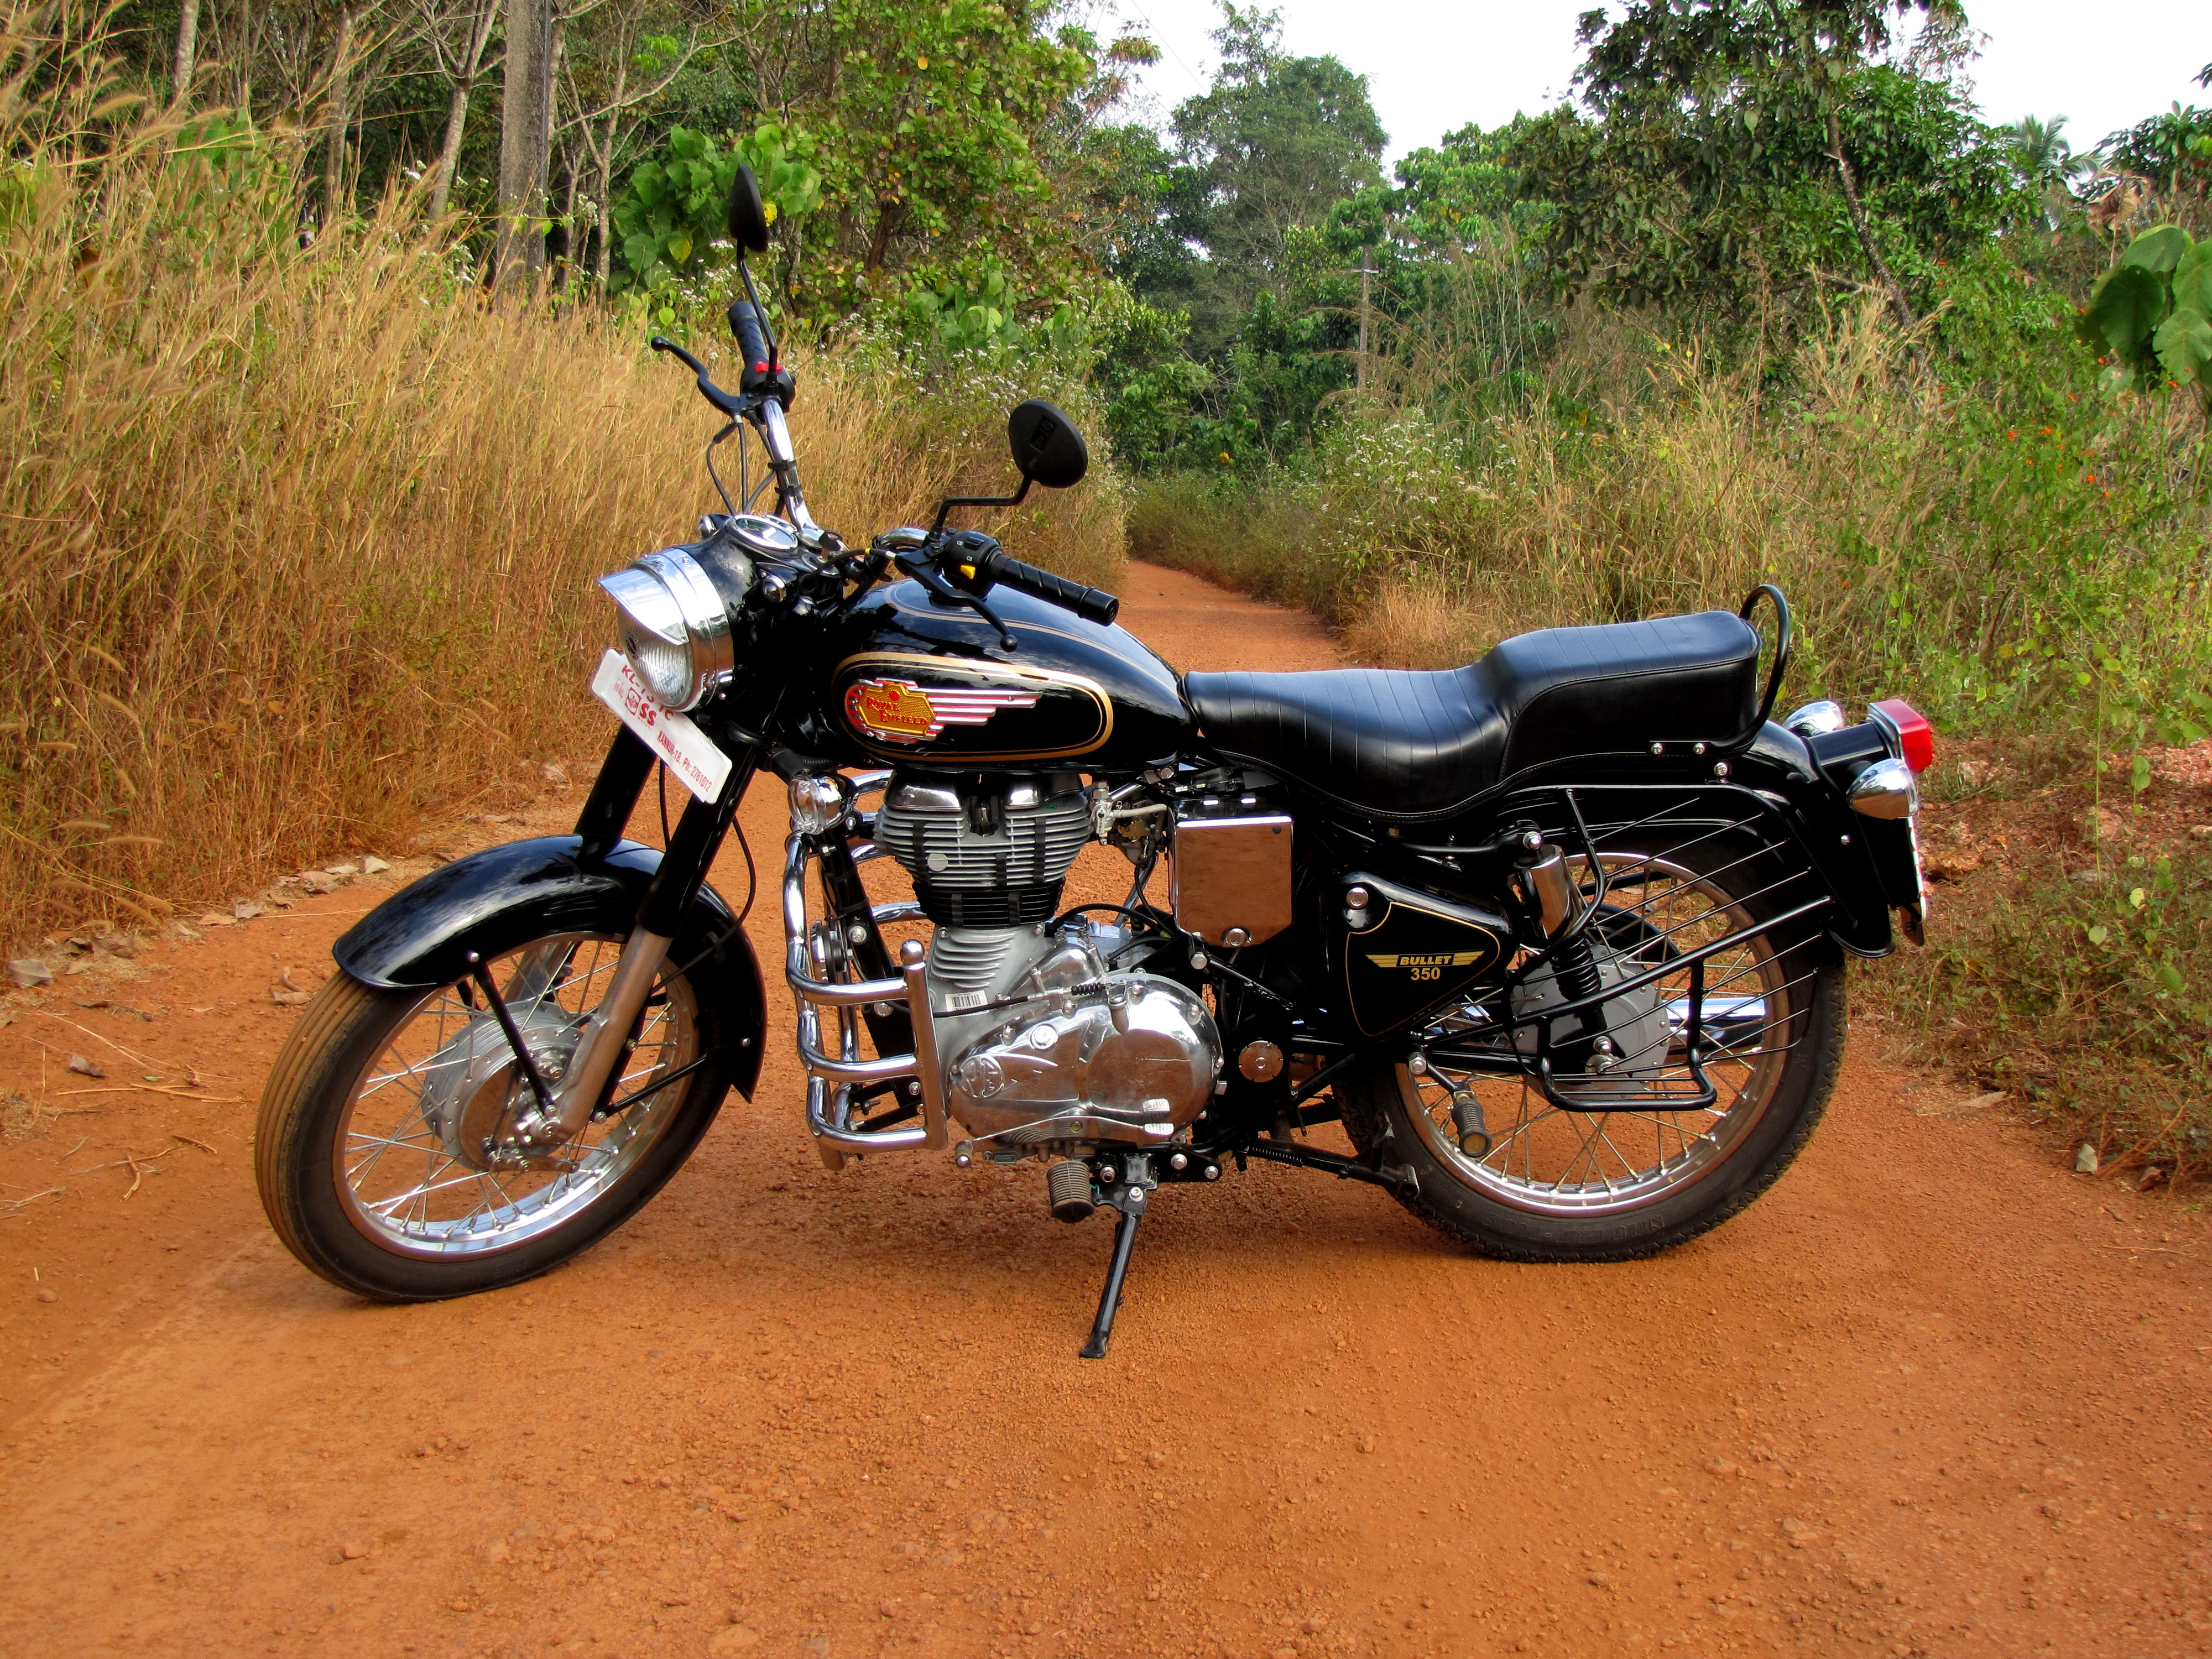 Royal Enfield Bullet 350 Army 2000 images #122952